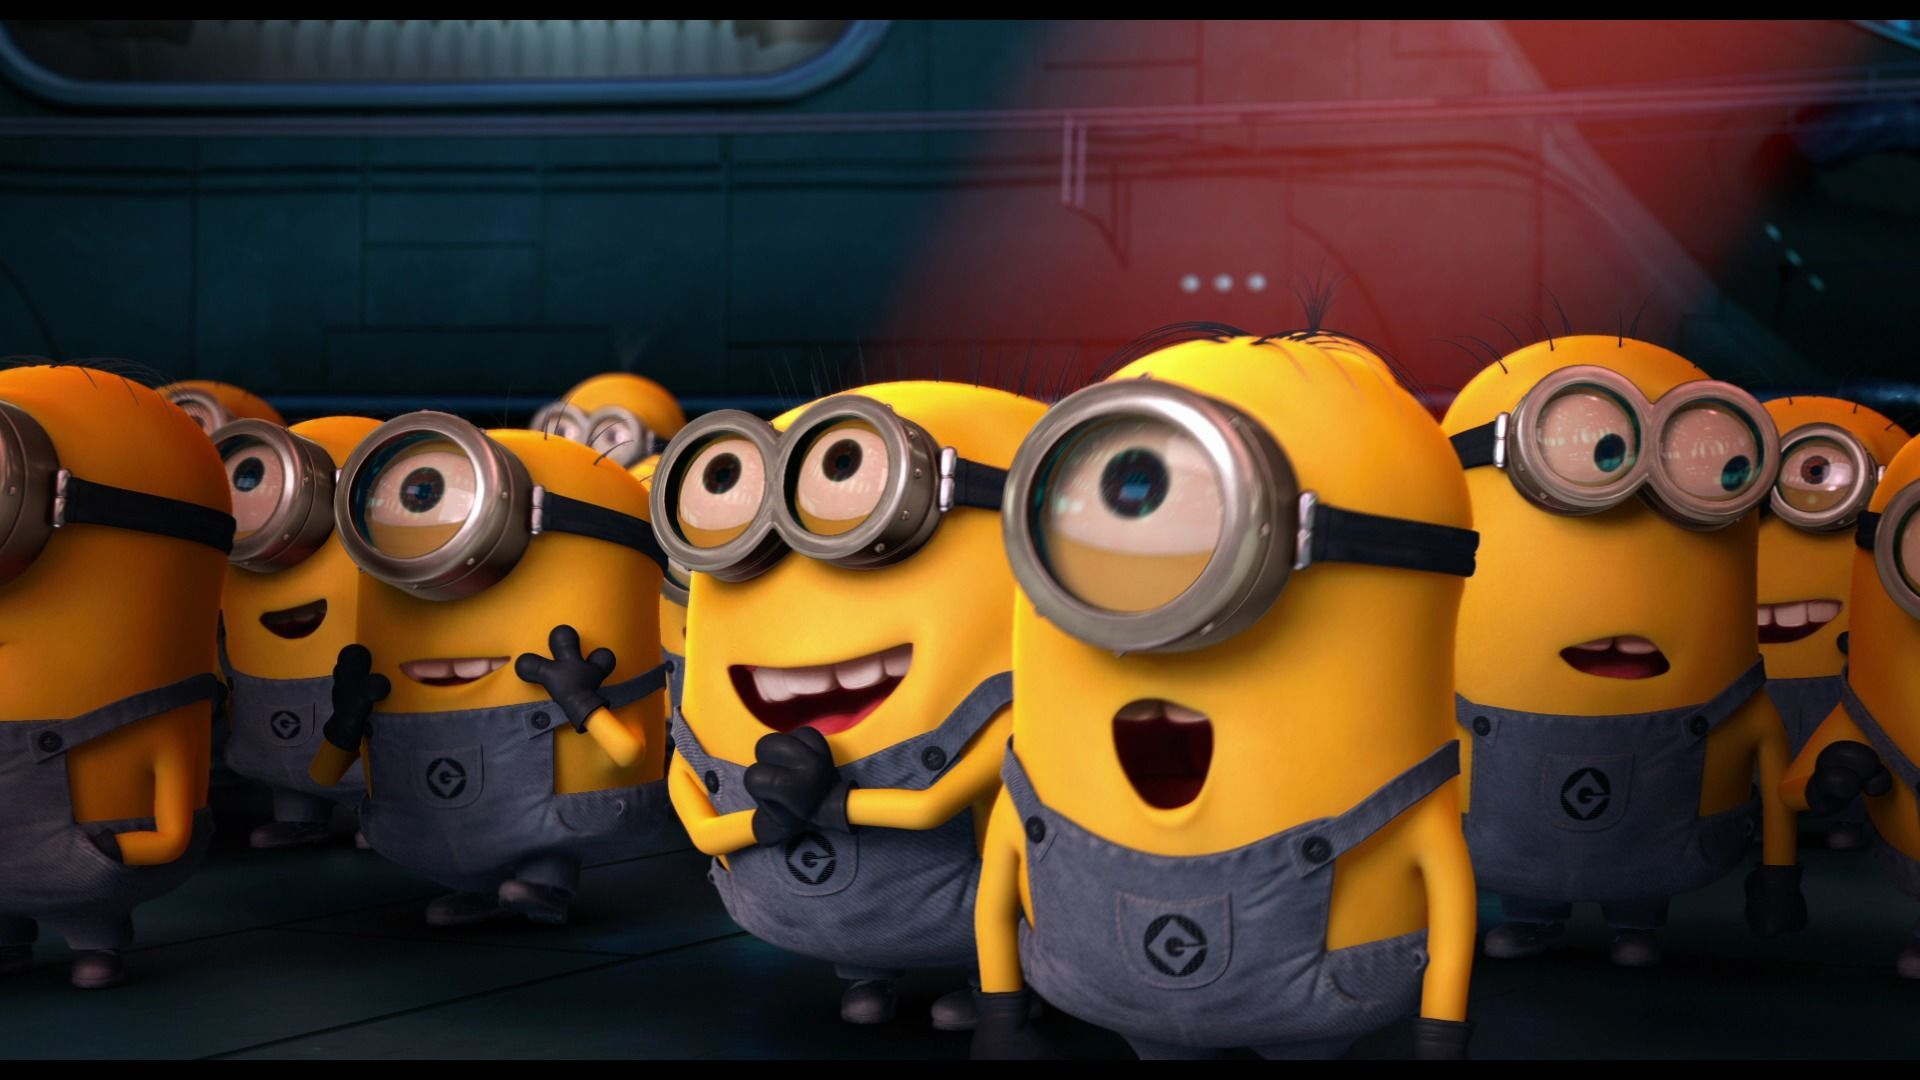 wallpaper.wiki-HD-Despicable-Me-Images-PIC-WPE0010378